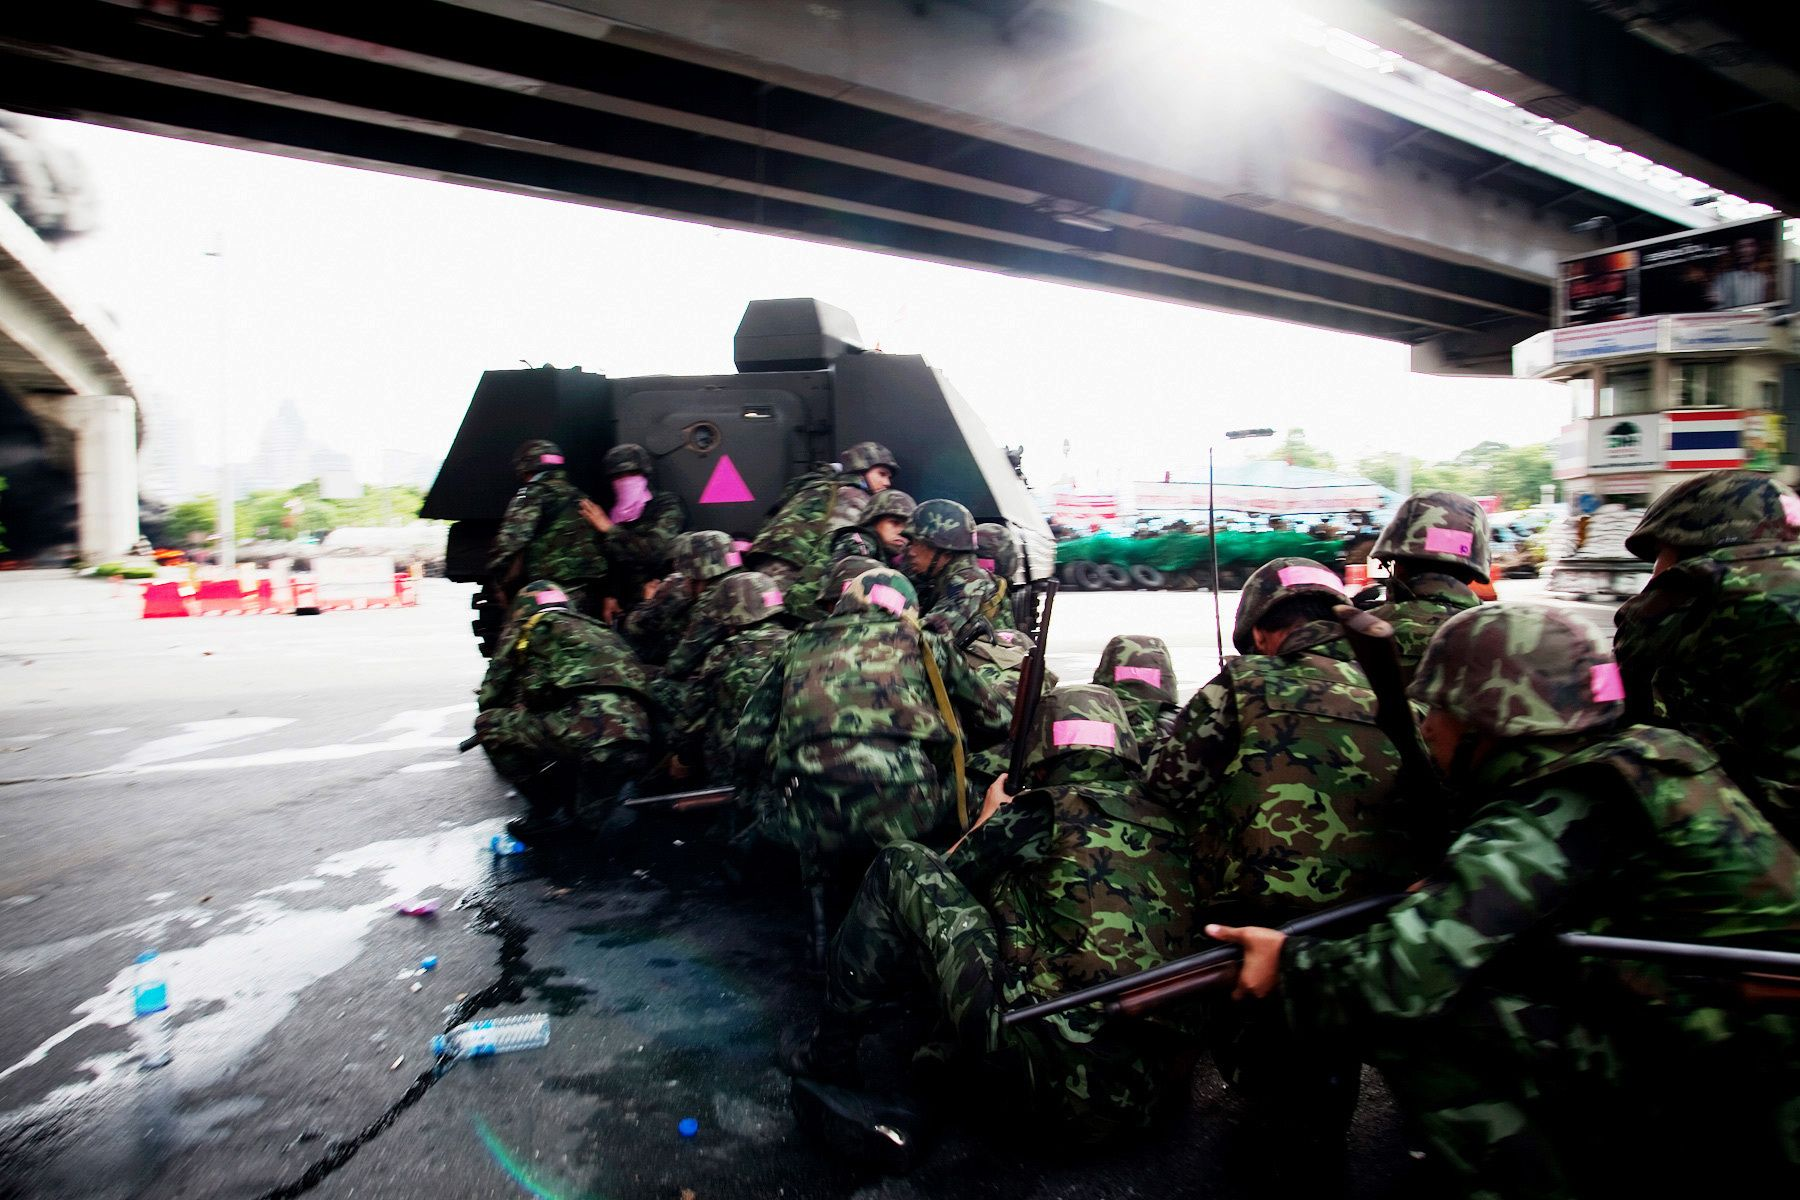 Soldiers enter the United Front for Democracy Against Dictatorship(UDD) encampment on the morning of the government crackdown against UDD demonstrators.